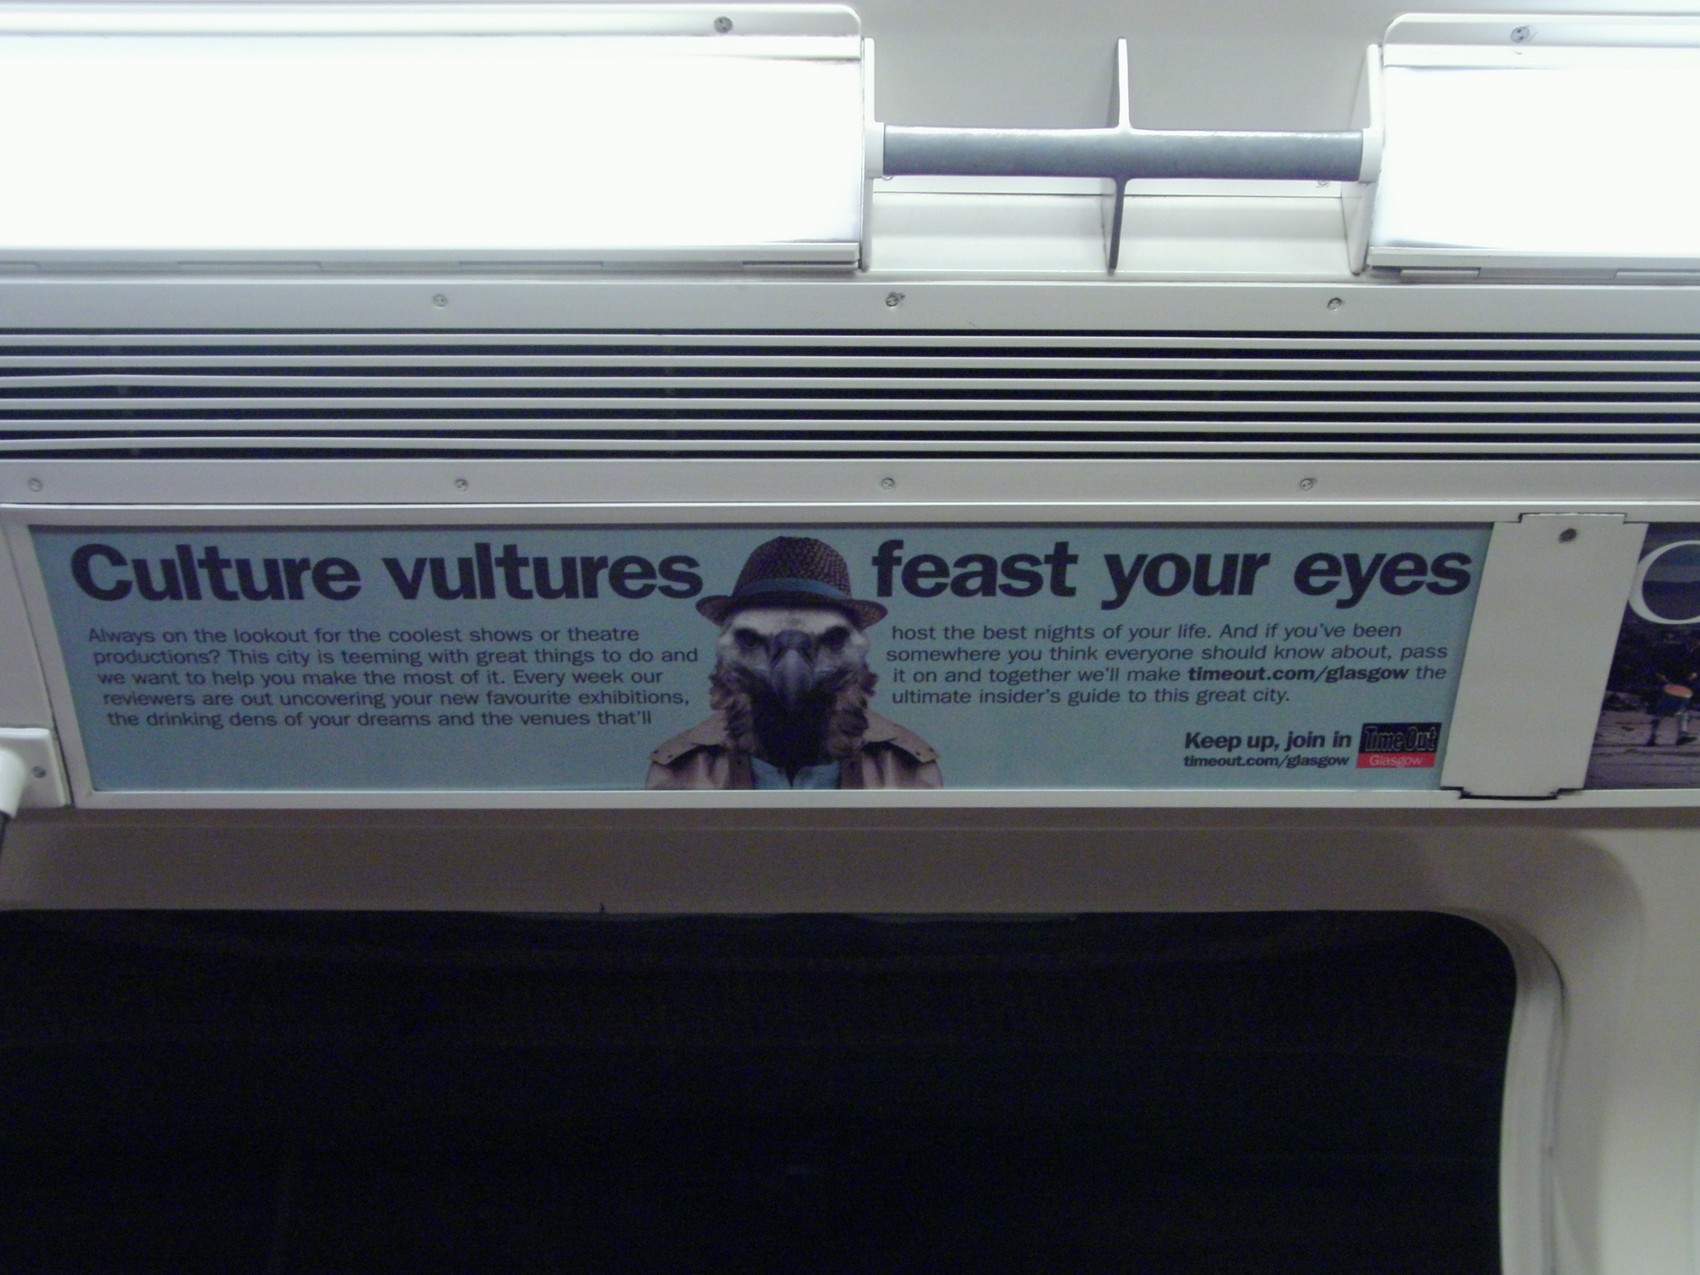 Timeout vulture subway advert